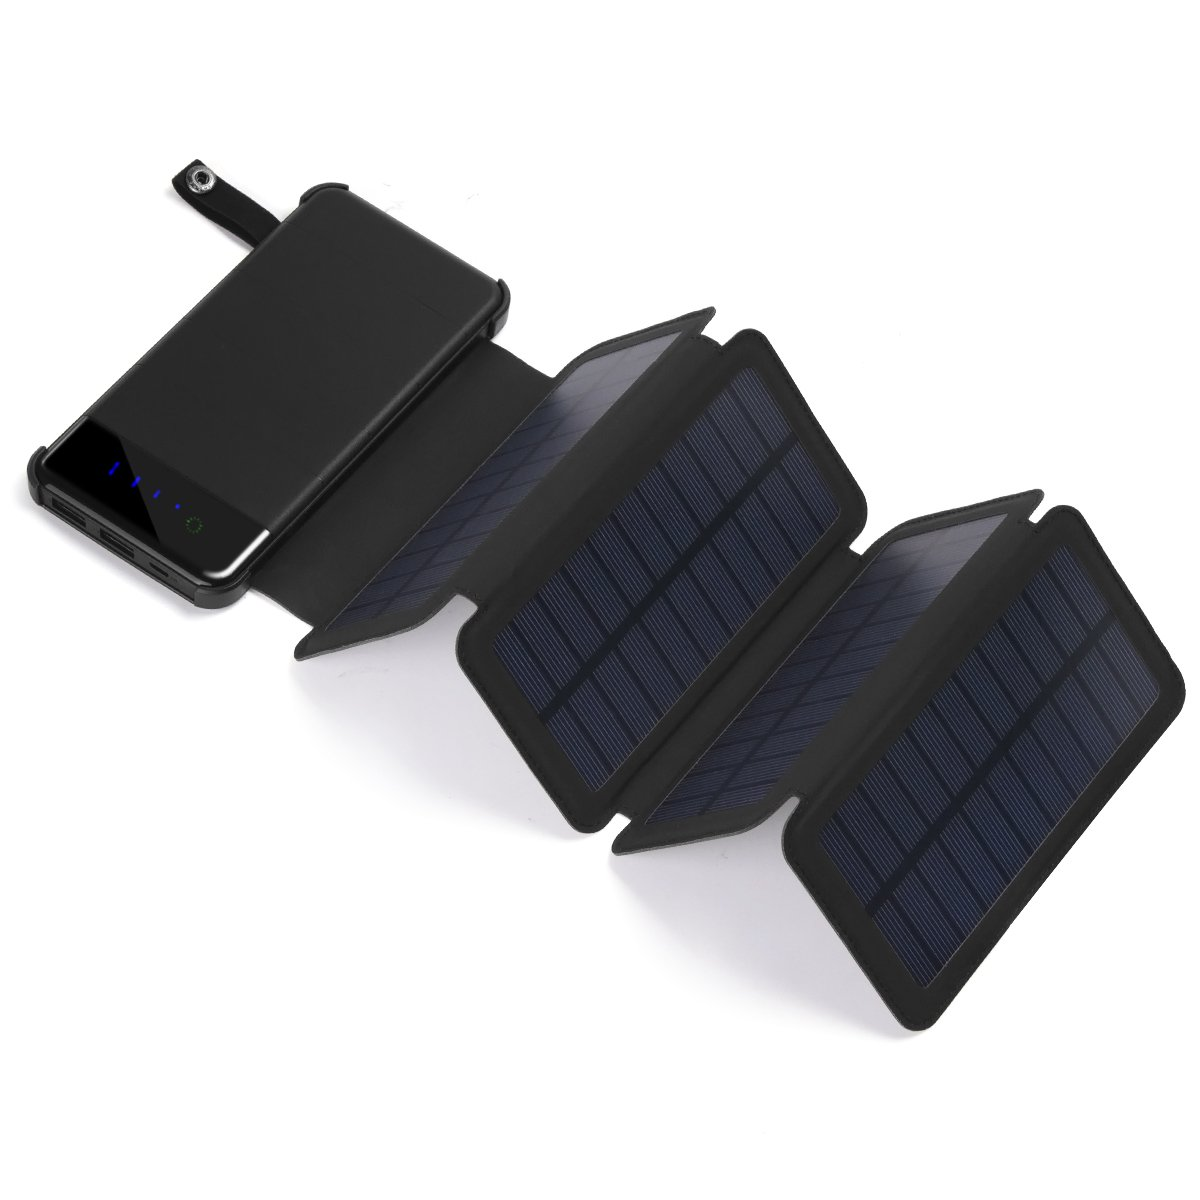 Shinngo Solar Charger 8000 mAh Portable Power Bank with 4 Detachable Solar Panels Charger Dual 2.1A USB Port Foldable Battery Pack with LED Light for Outdoor Activities Suits for iPhone,Samsung etc